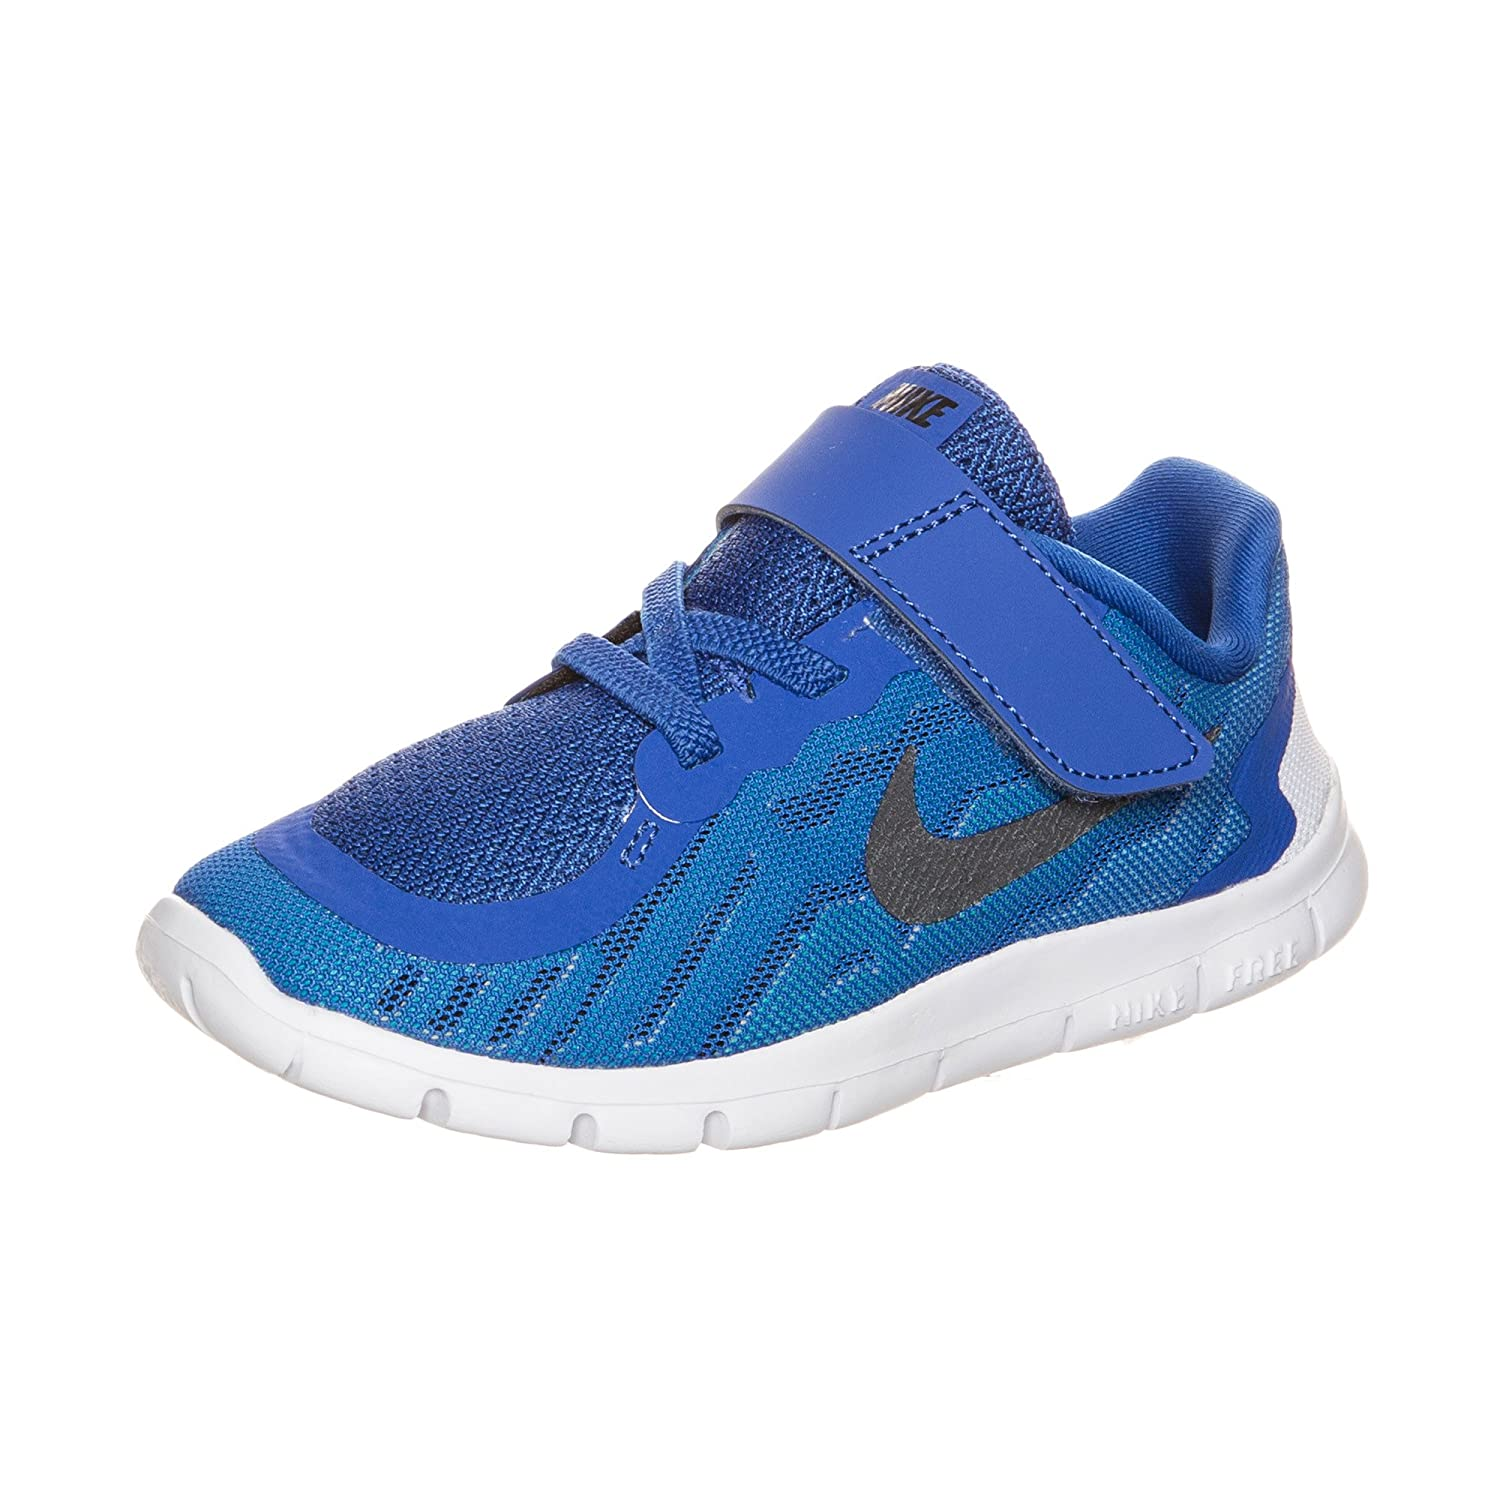 new product caf09 9dd7c Amazon.com | Nike Free 5.0 Toddler Boys Shoe Game Royal/Neo ...